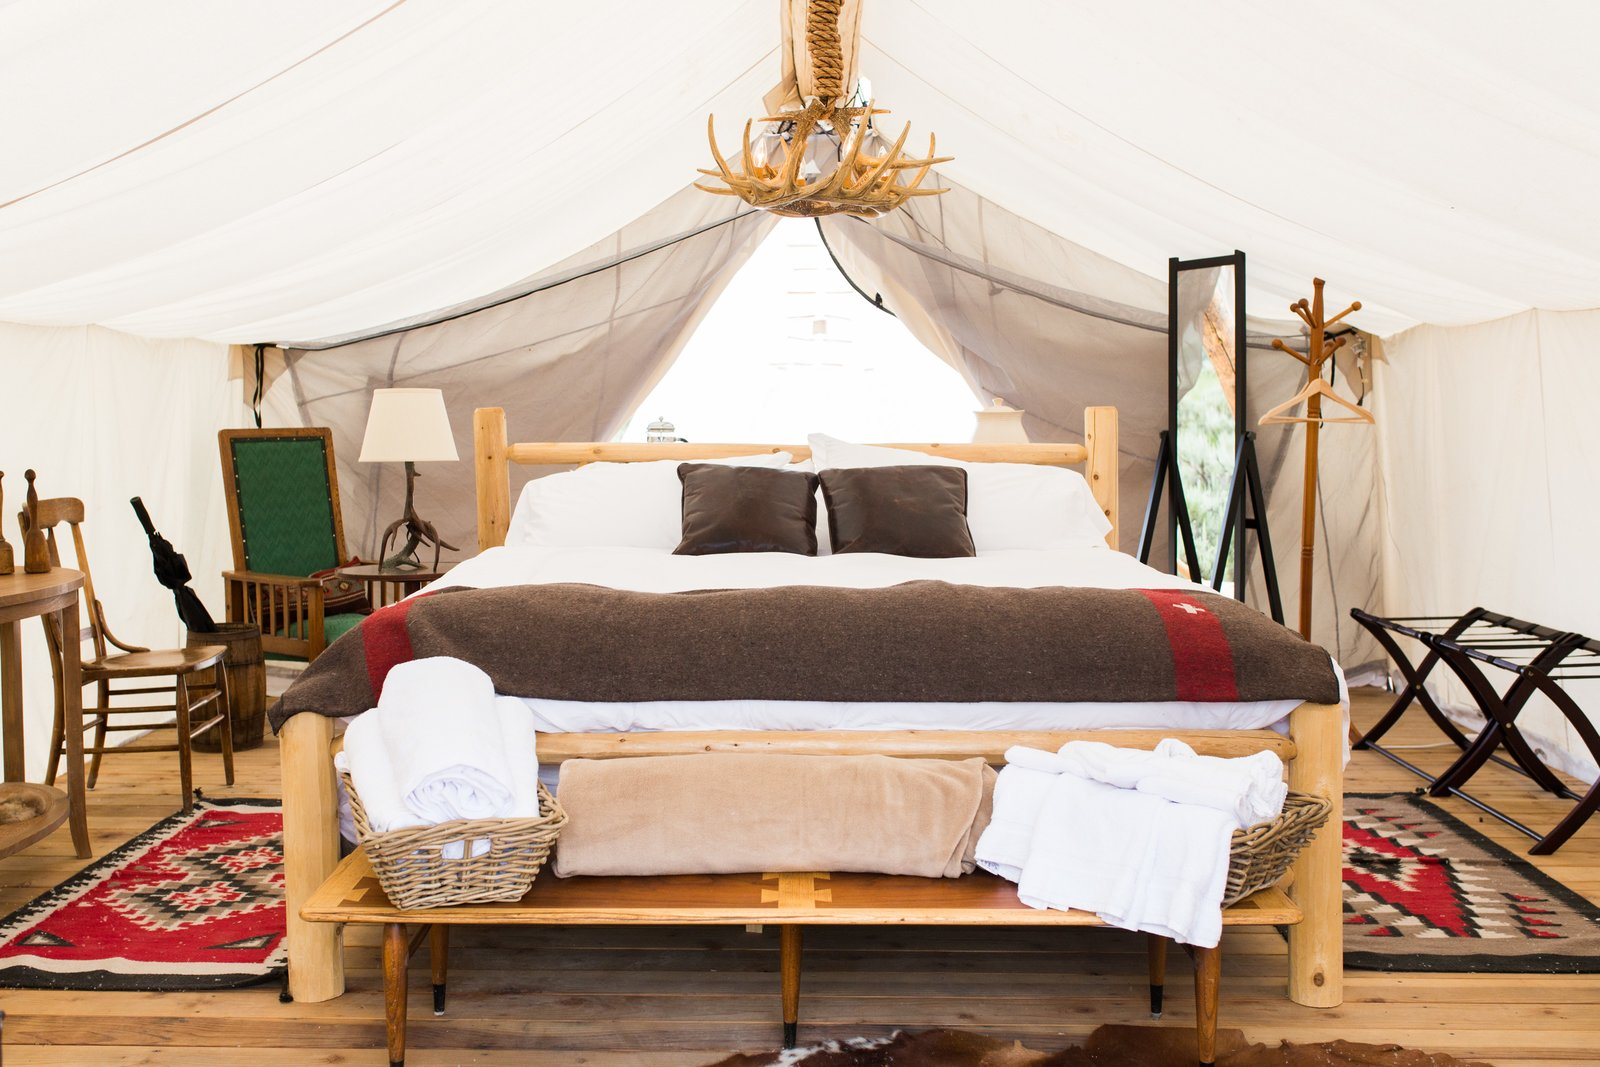 Tented bedroom with table lamp and center hanging pendant light with antler facades